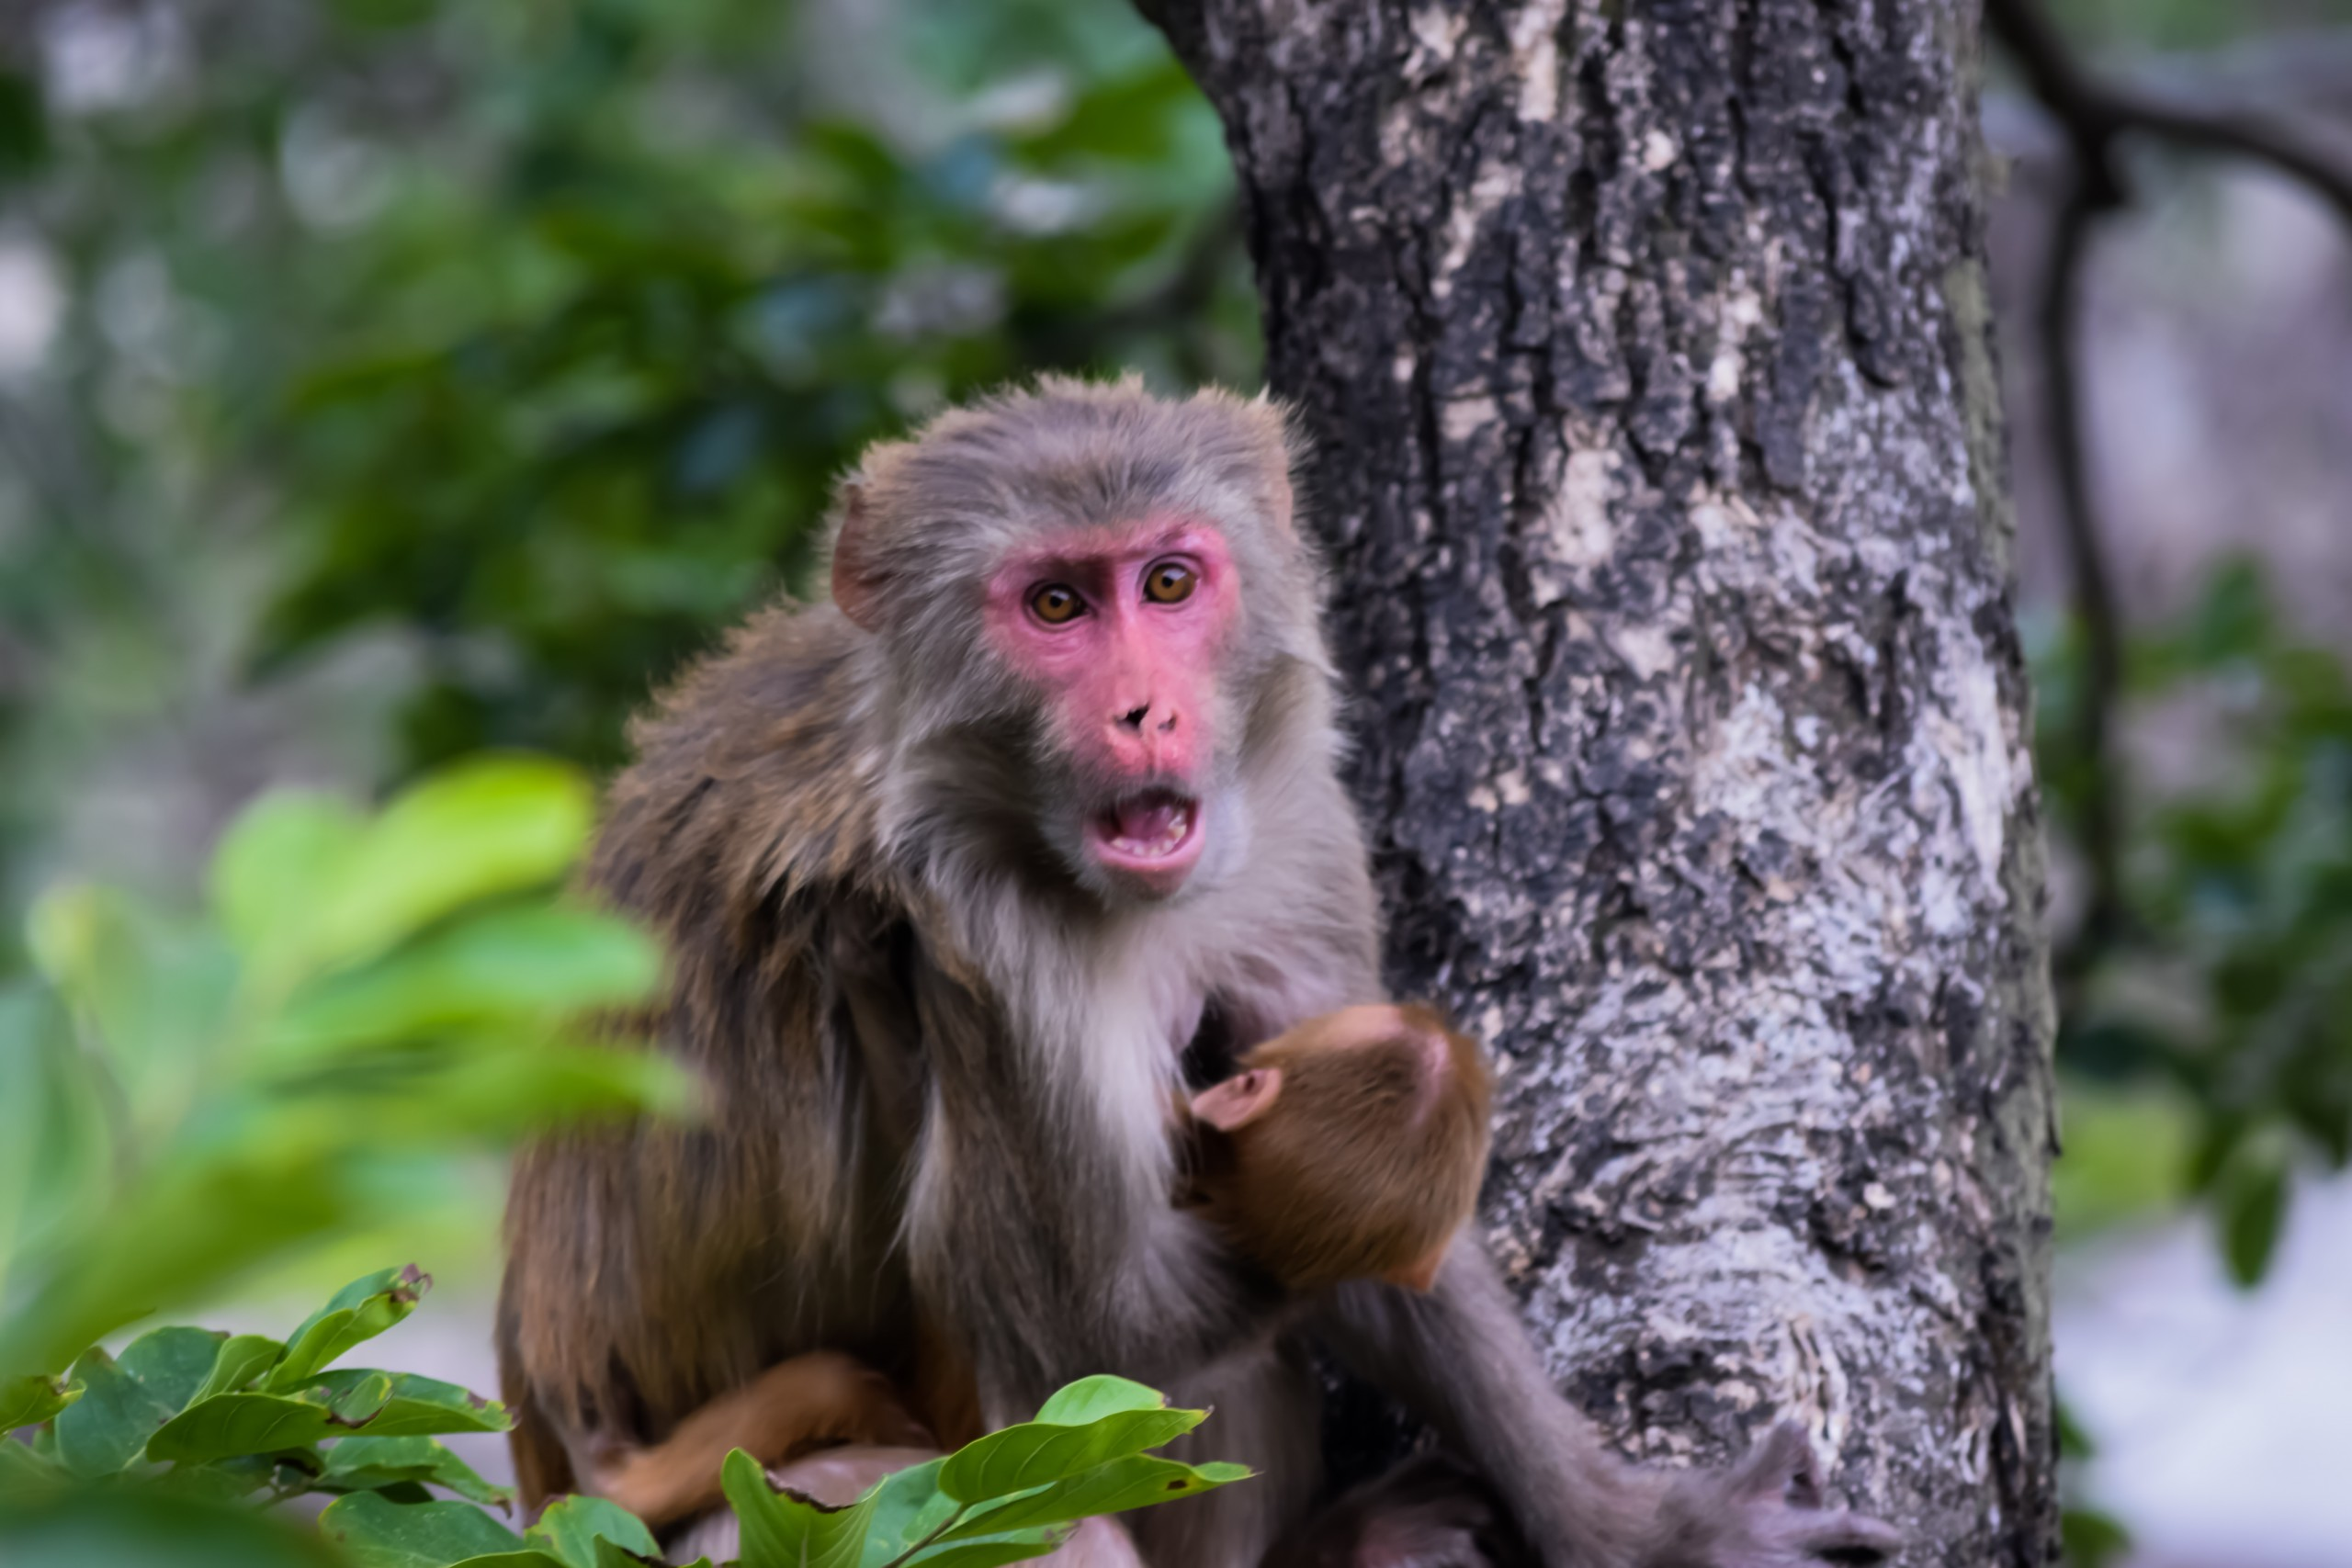 Angry Female monkey trying to protect her baby